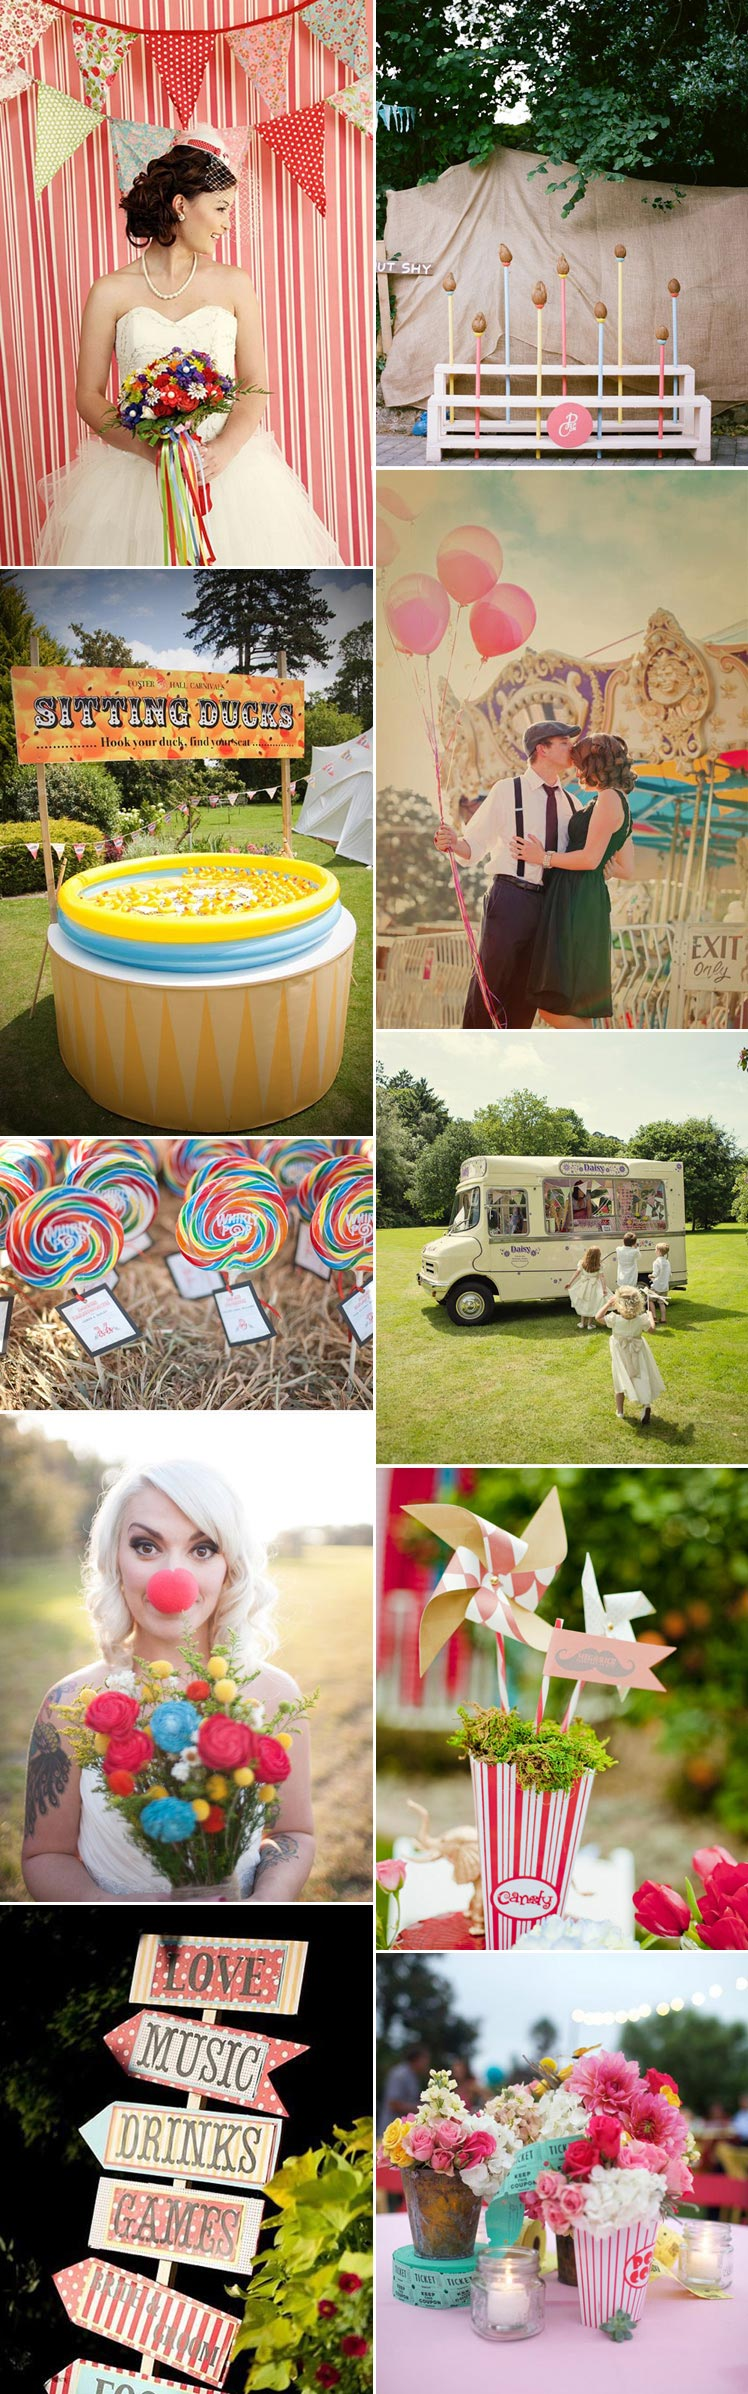 Fairground wedding theme inspiration